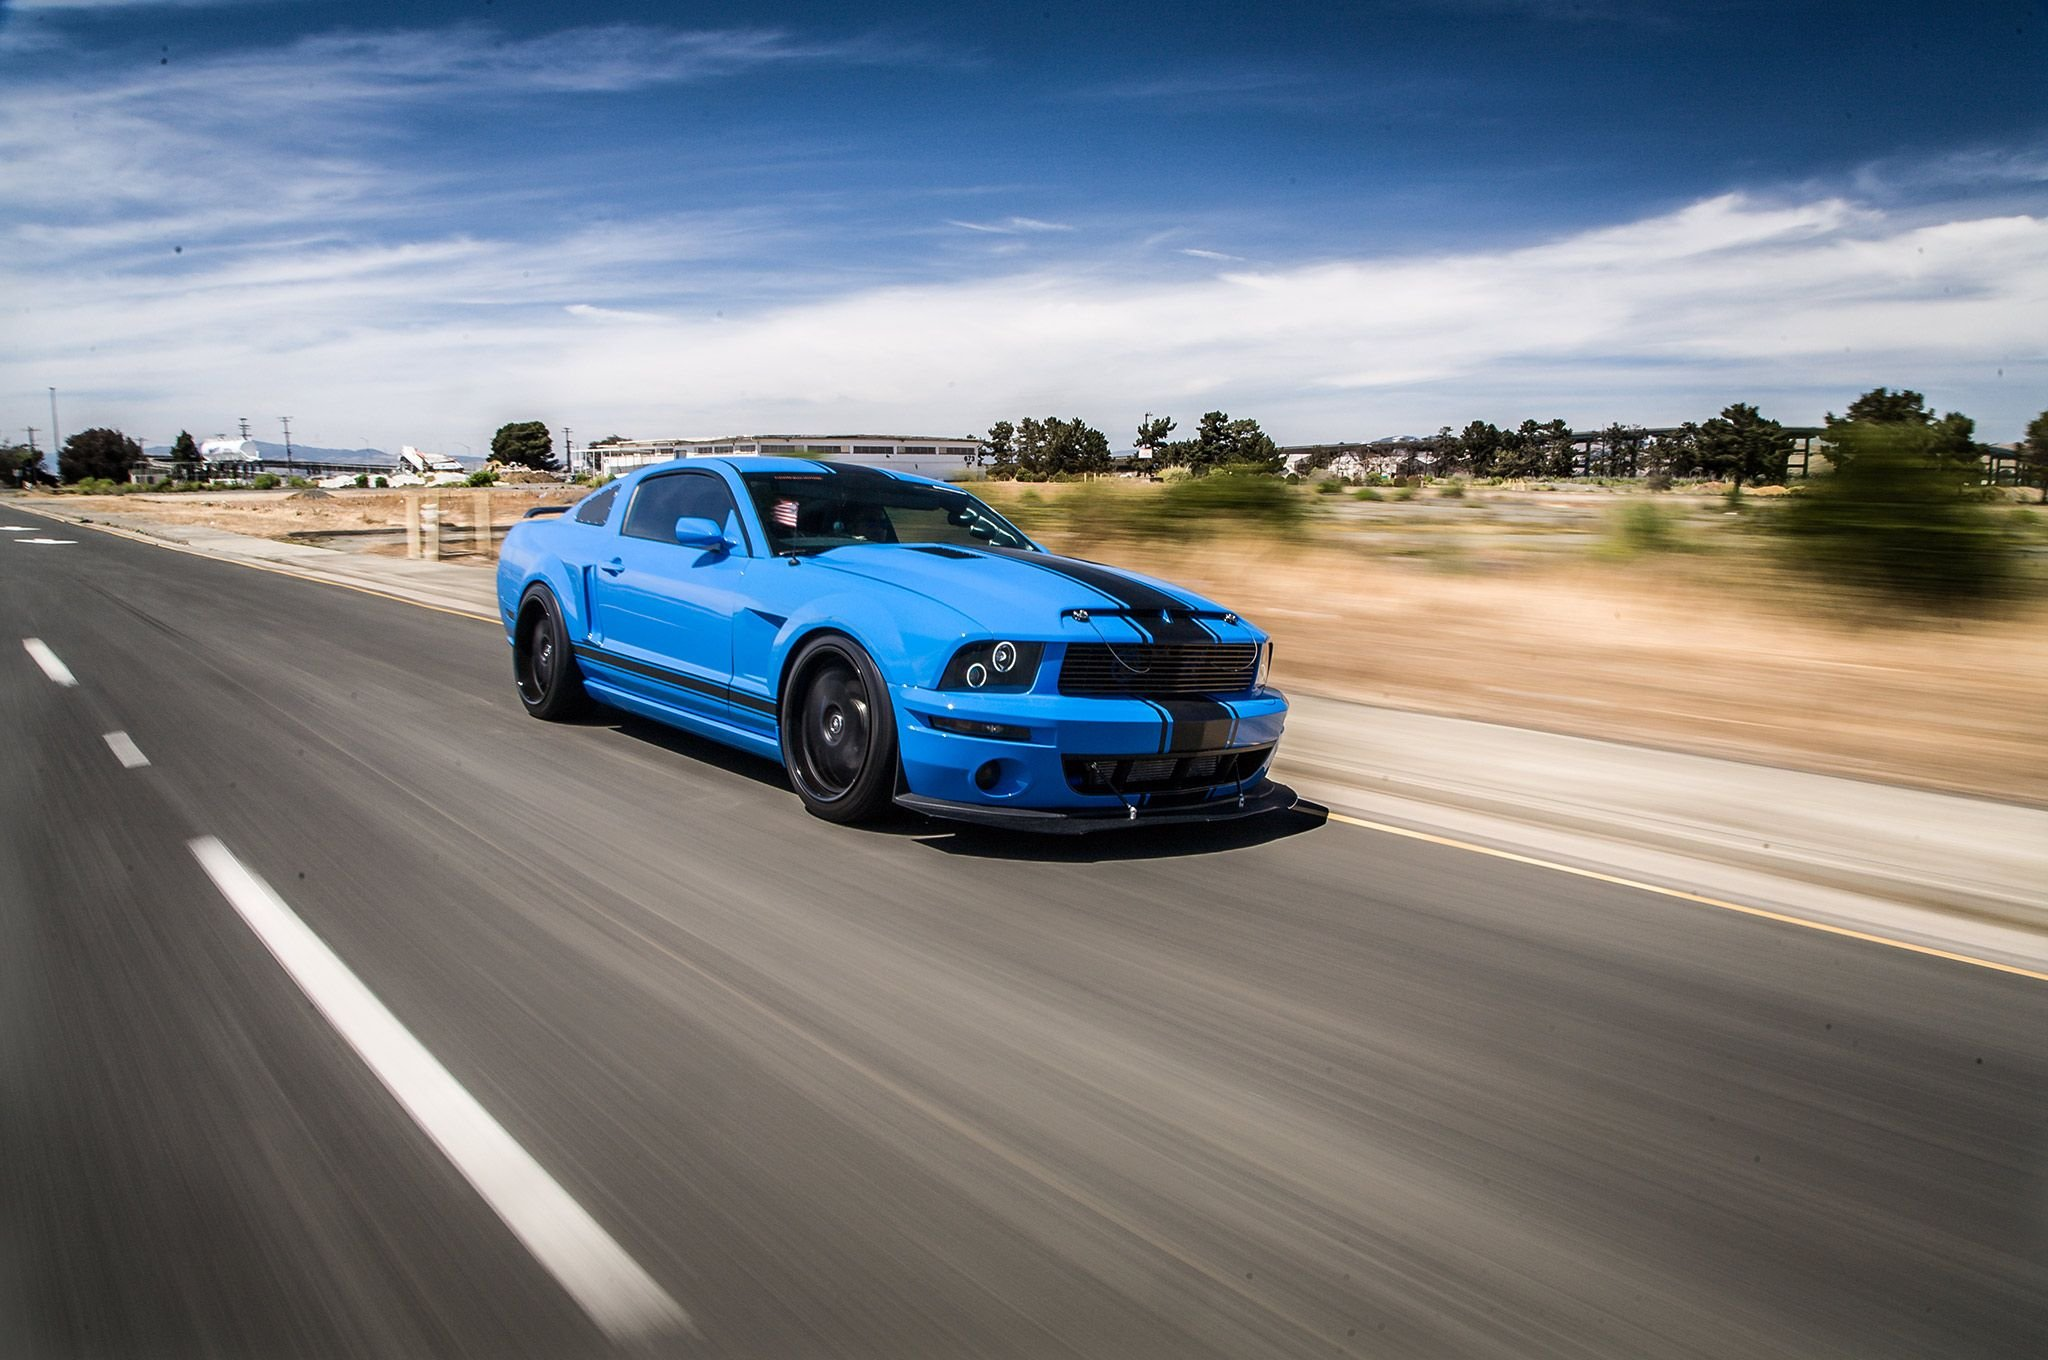 2005 ford mustang shelby gt super street pro touring supercar usa 02 wallpaper 2048x1360. Black Bedroom Furniture Sets. Home Design Ideas